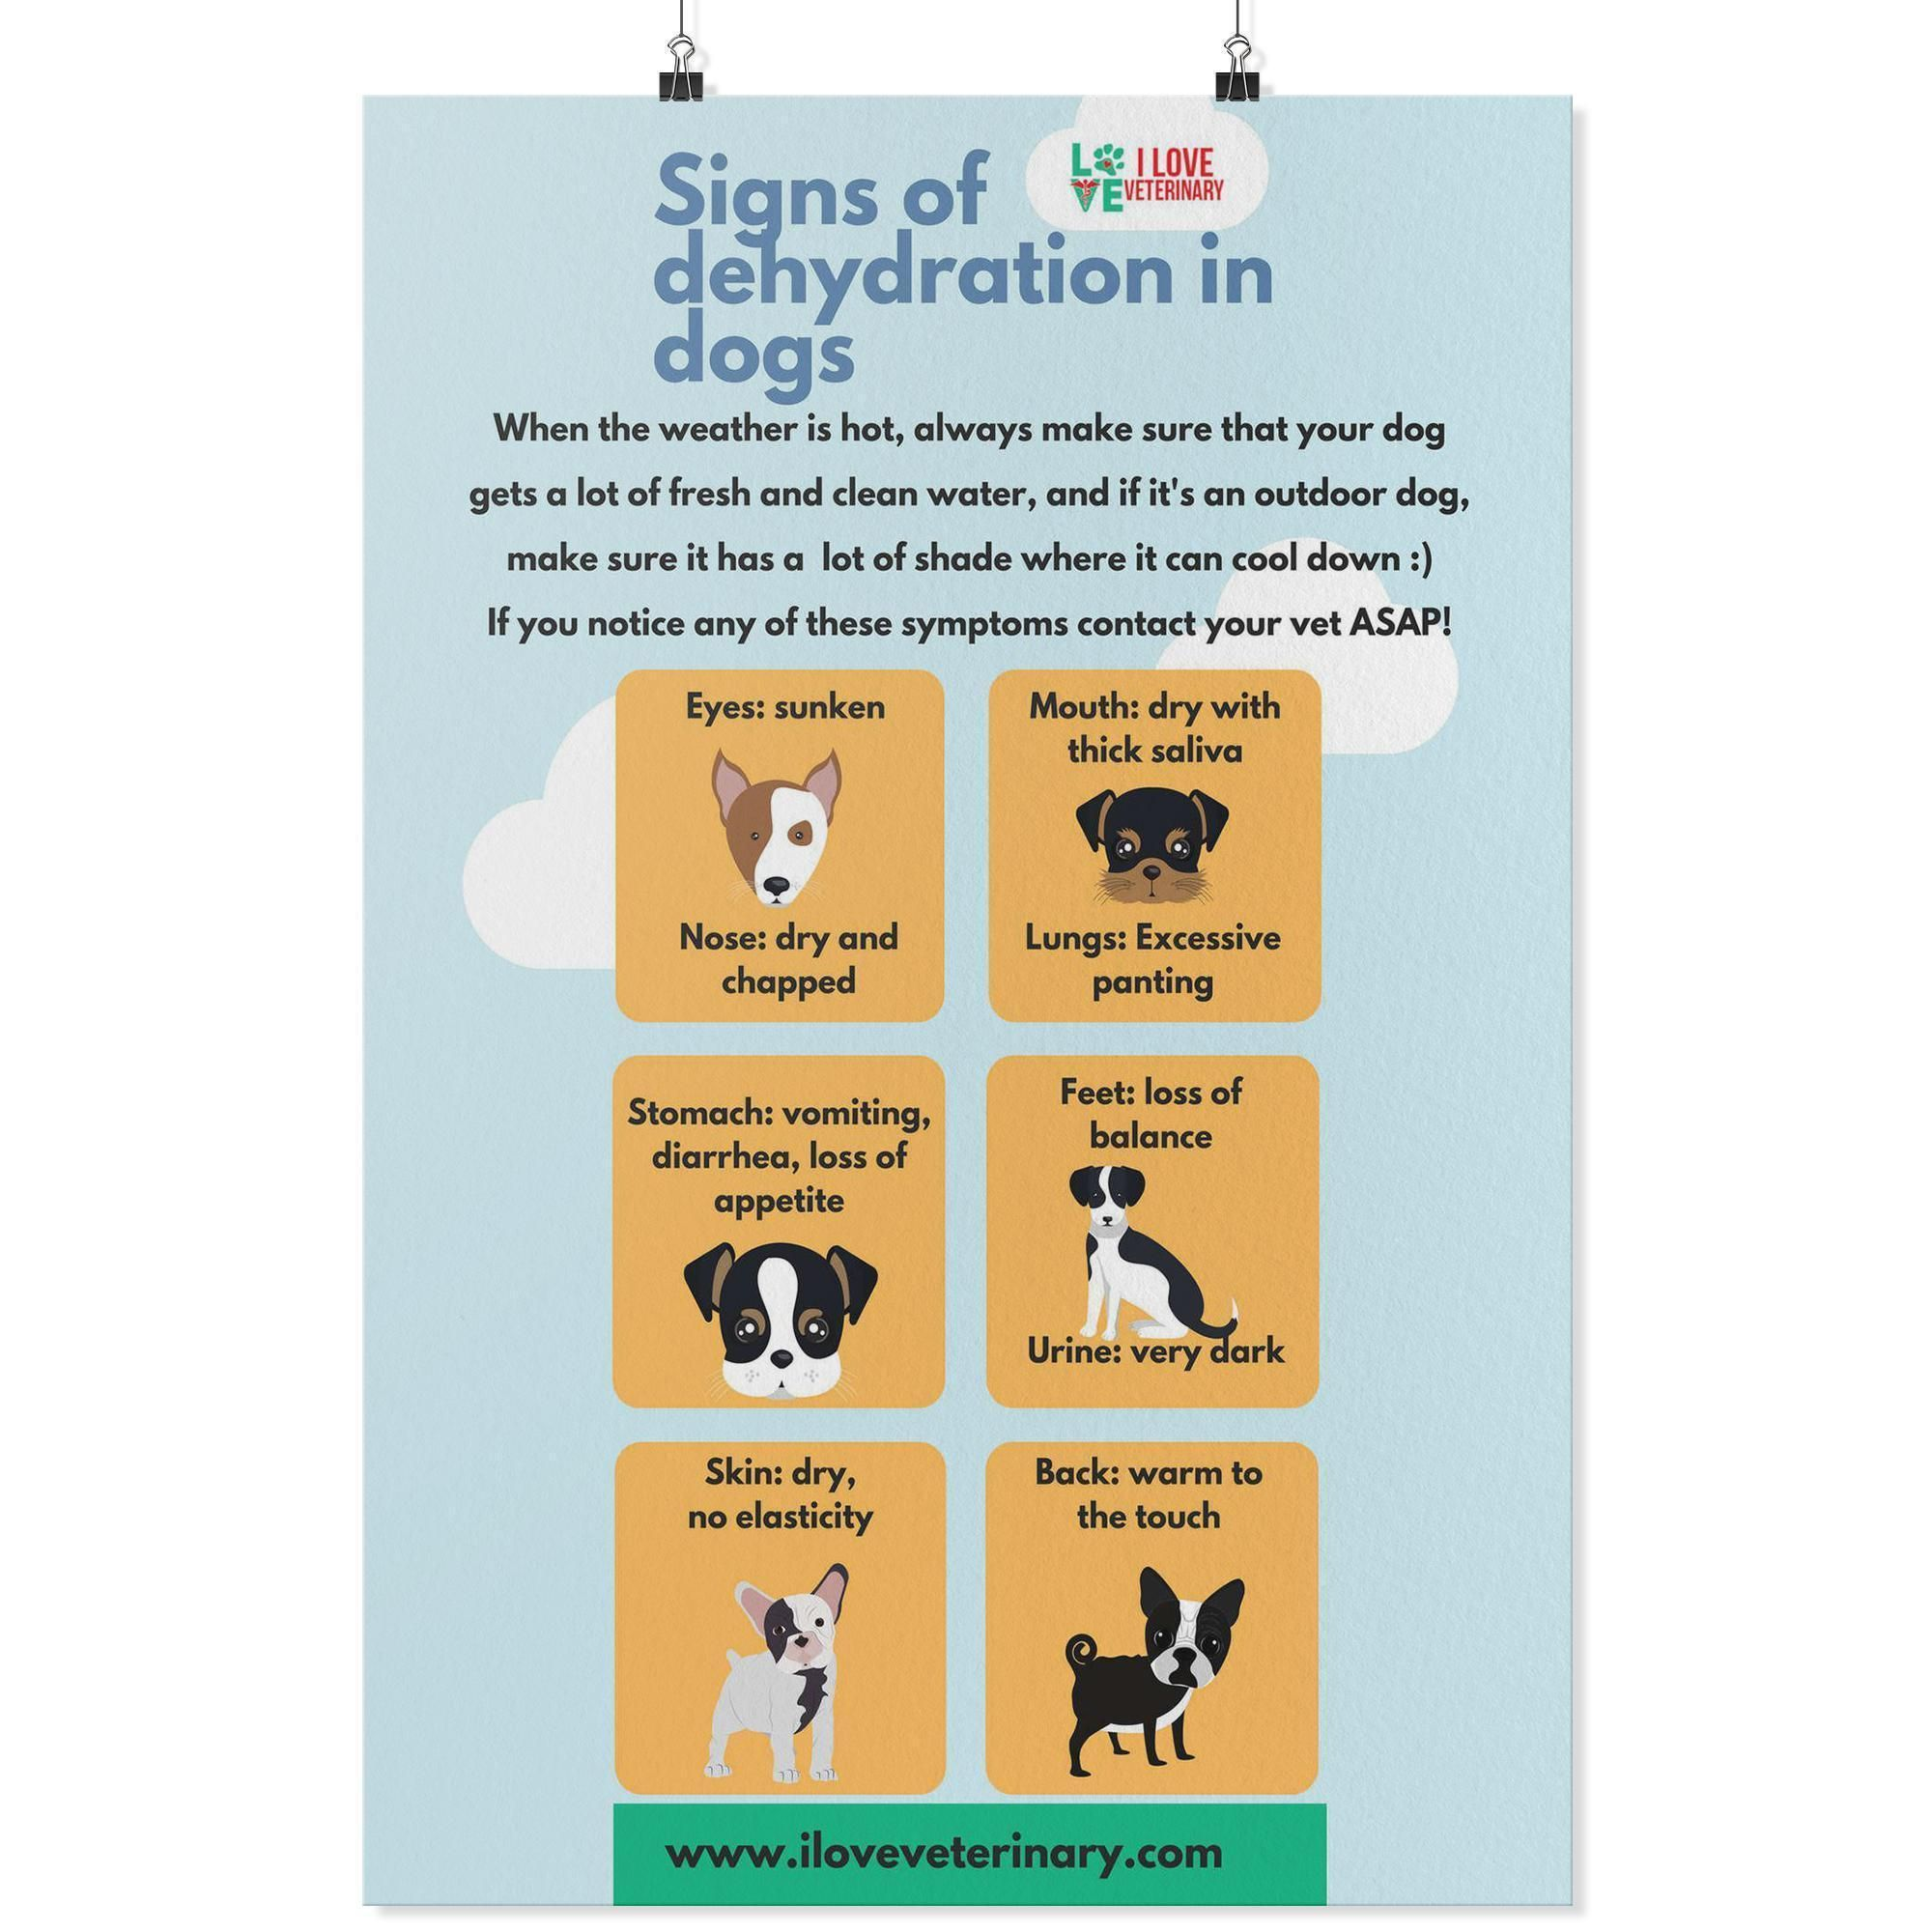 Signs Of Dehydration In Dogs Poster In 2020 Dog Poster Gifts For Veterinarians Signs Of Dehydration